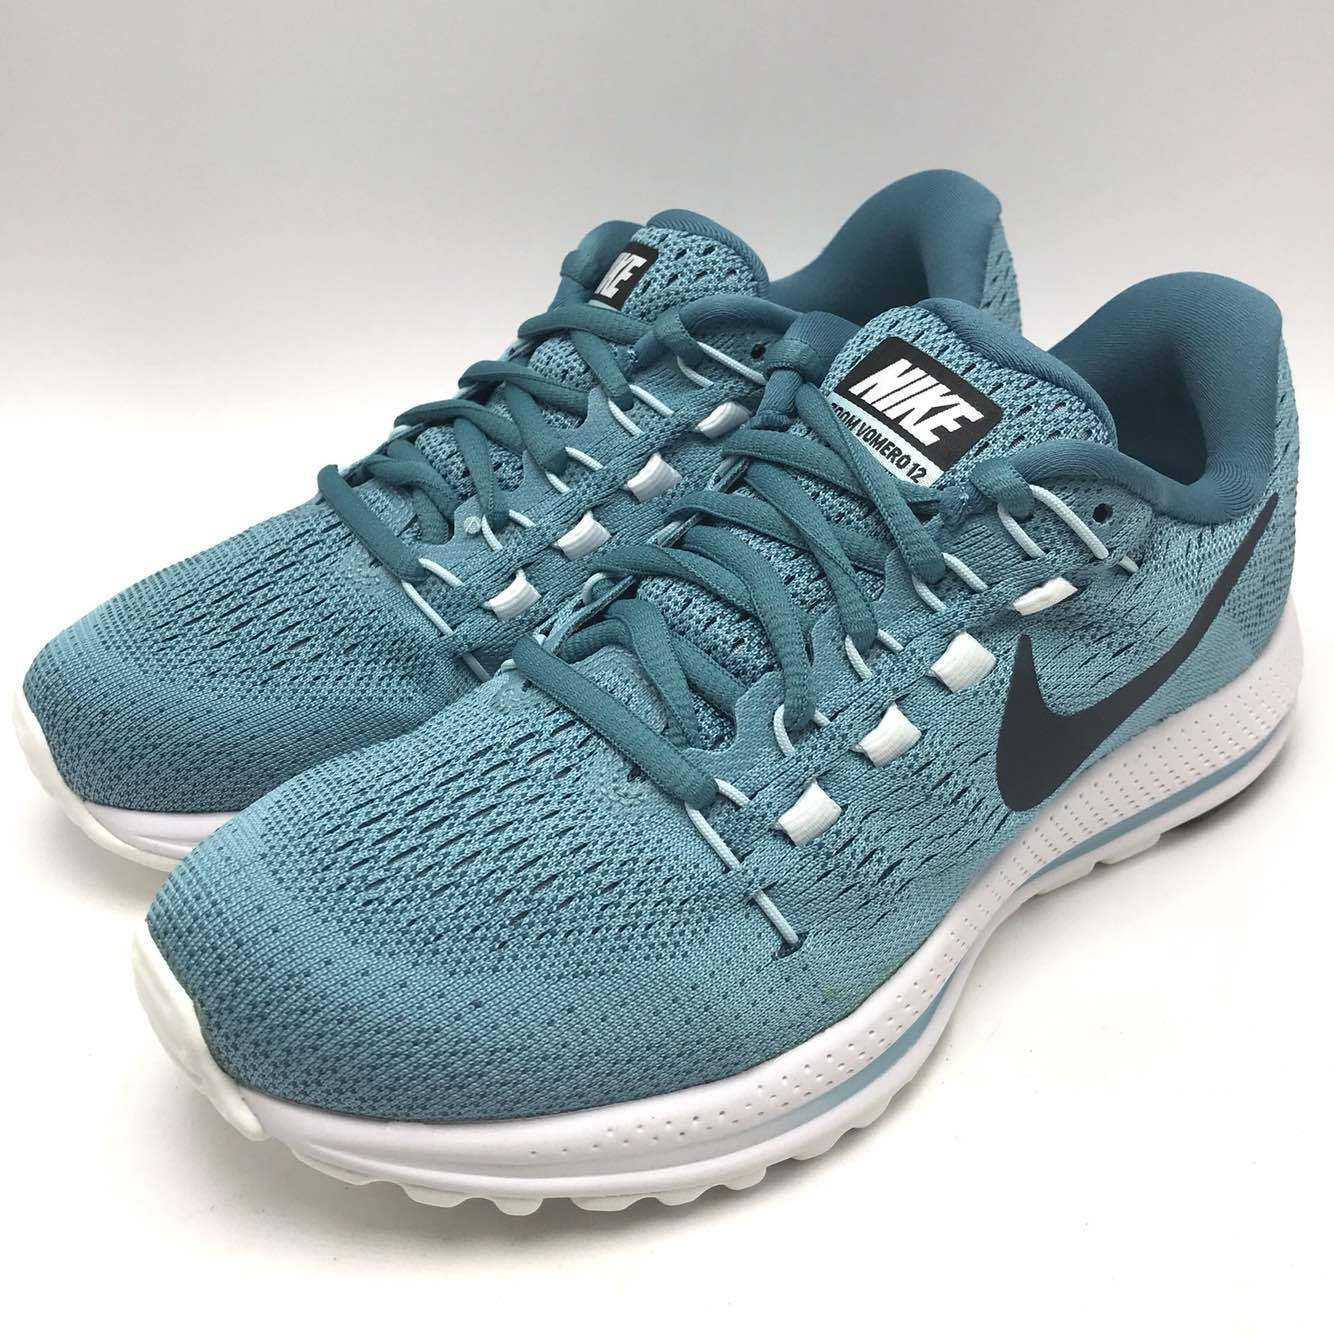 Nike Air Zoom Vomero 12 Women's shoes Mica bluee Obsidian Smokey bluee 863766-402